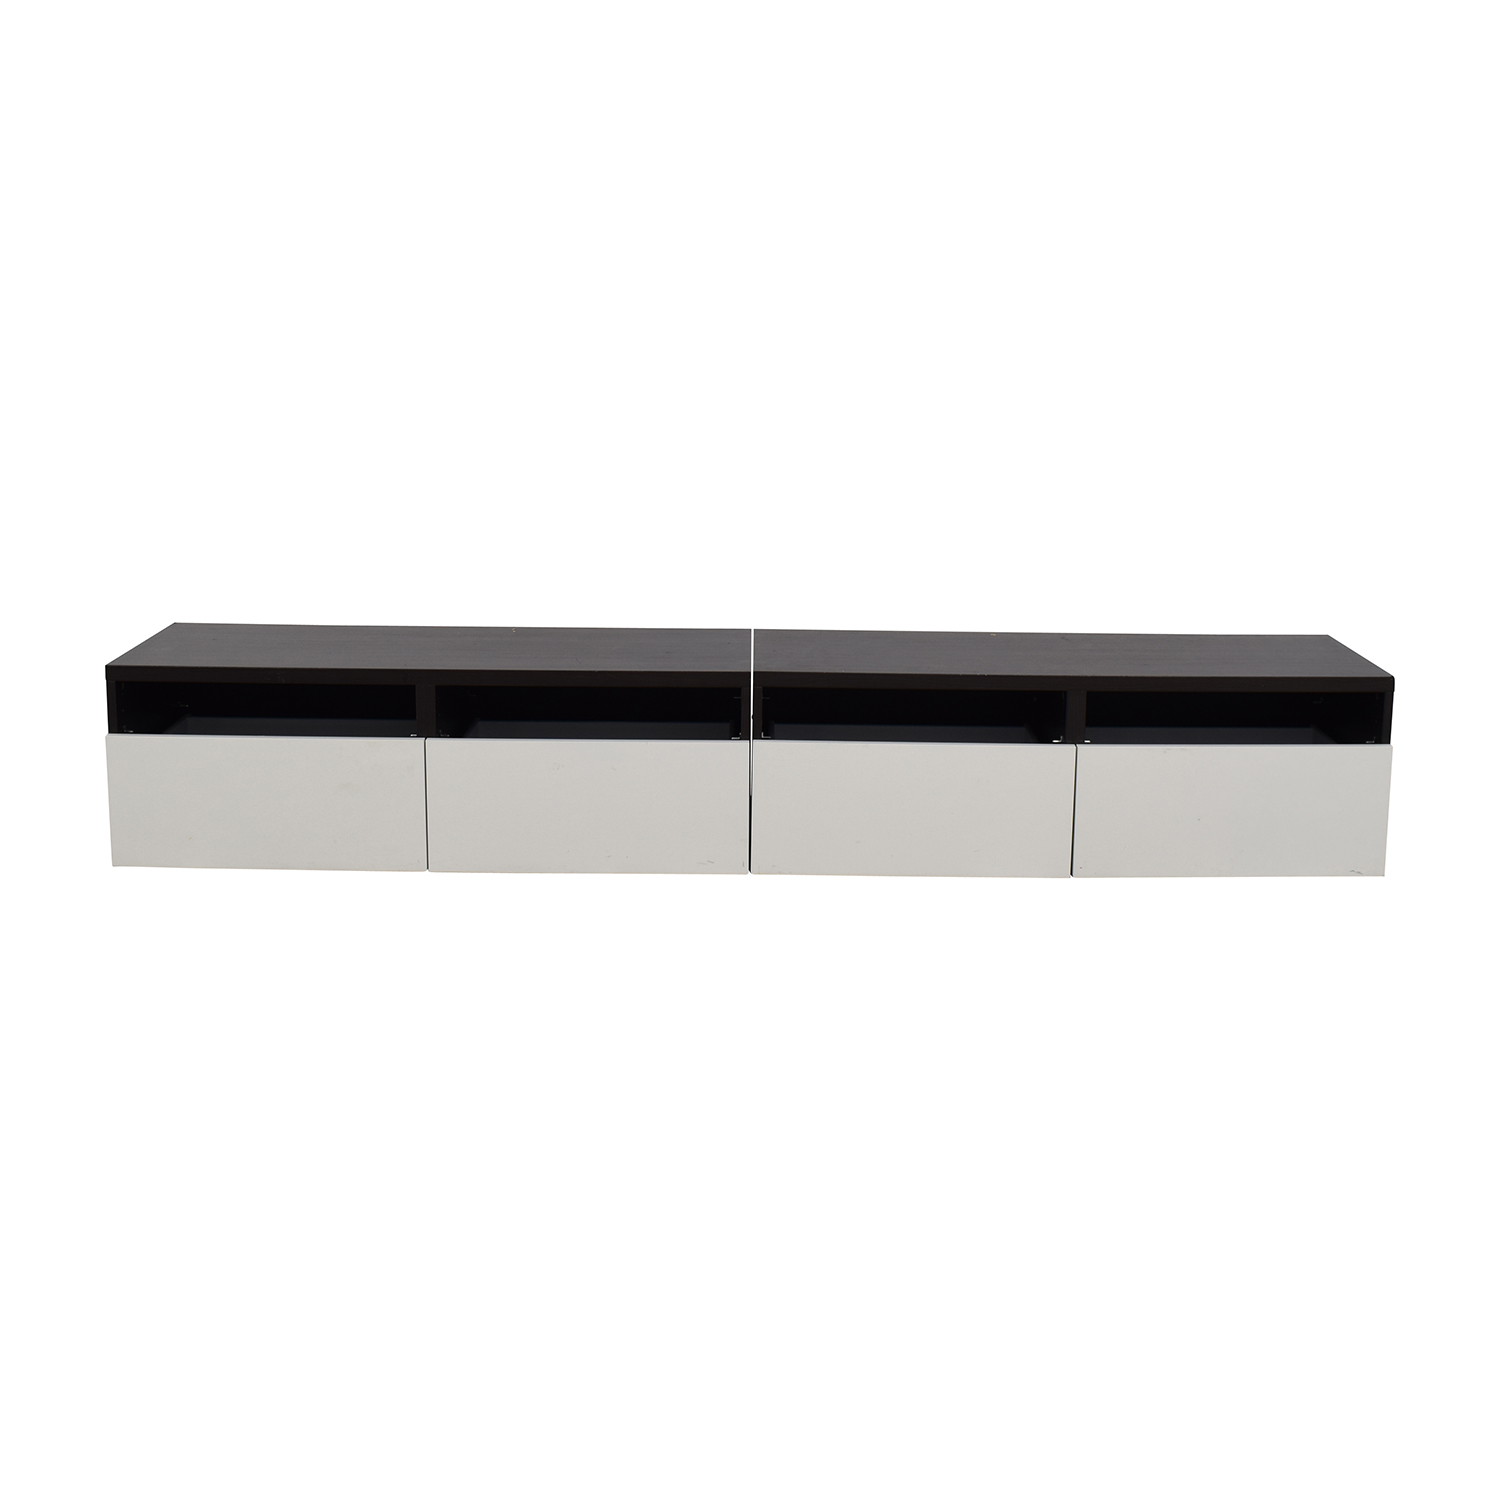 IKEA IKEA Brown and White Media Unit dimensions